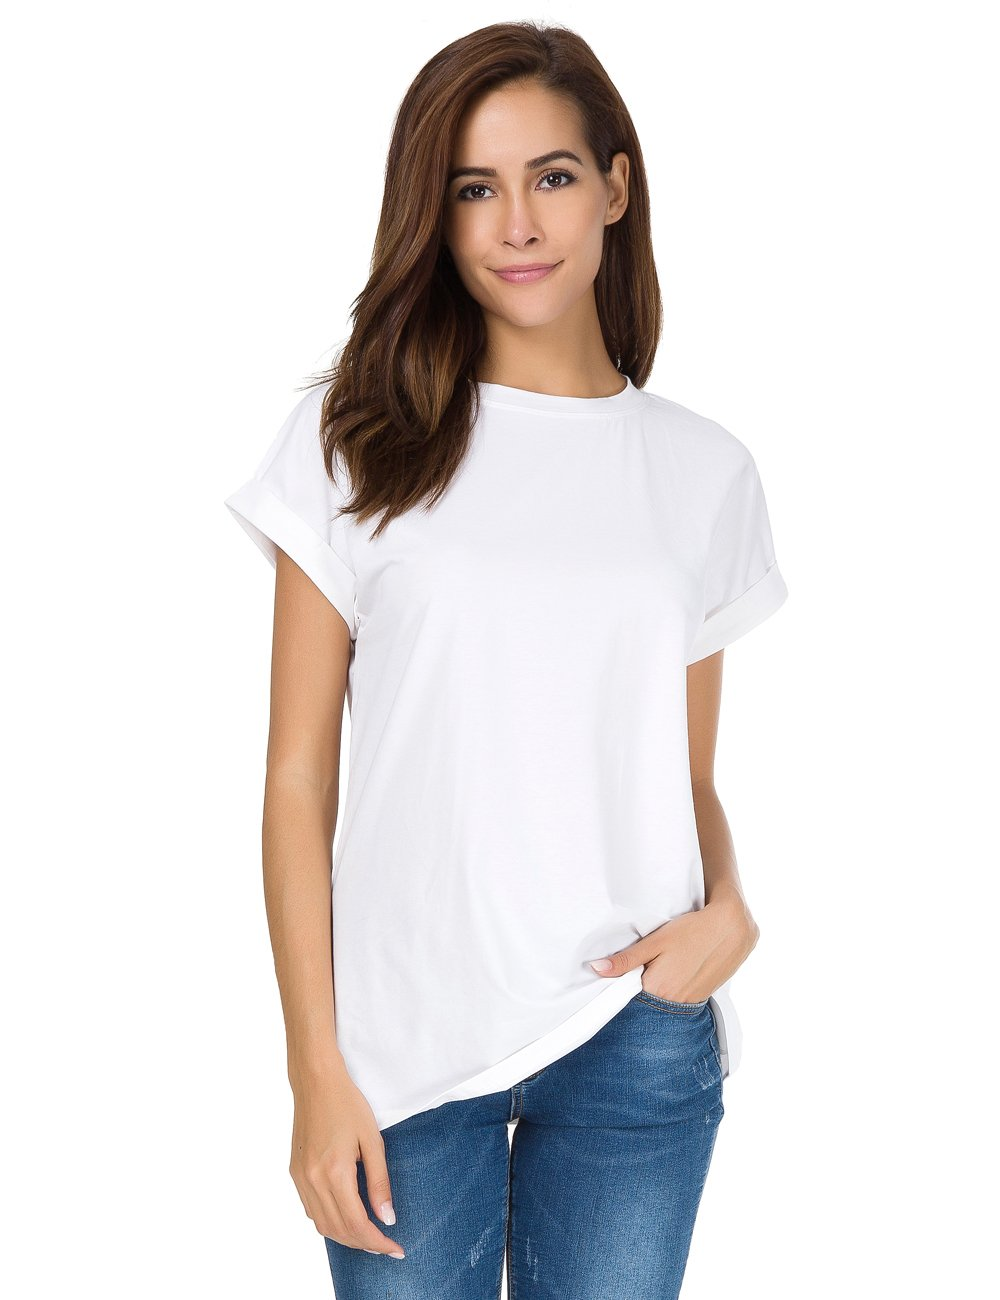 nordicwinds Women's Summer Casual Crew Neck Plain Fit T-Shirt Tops